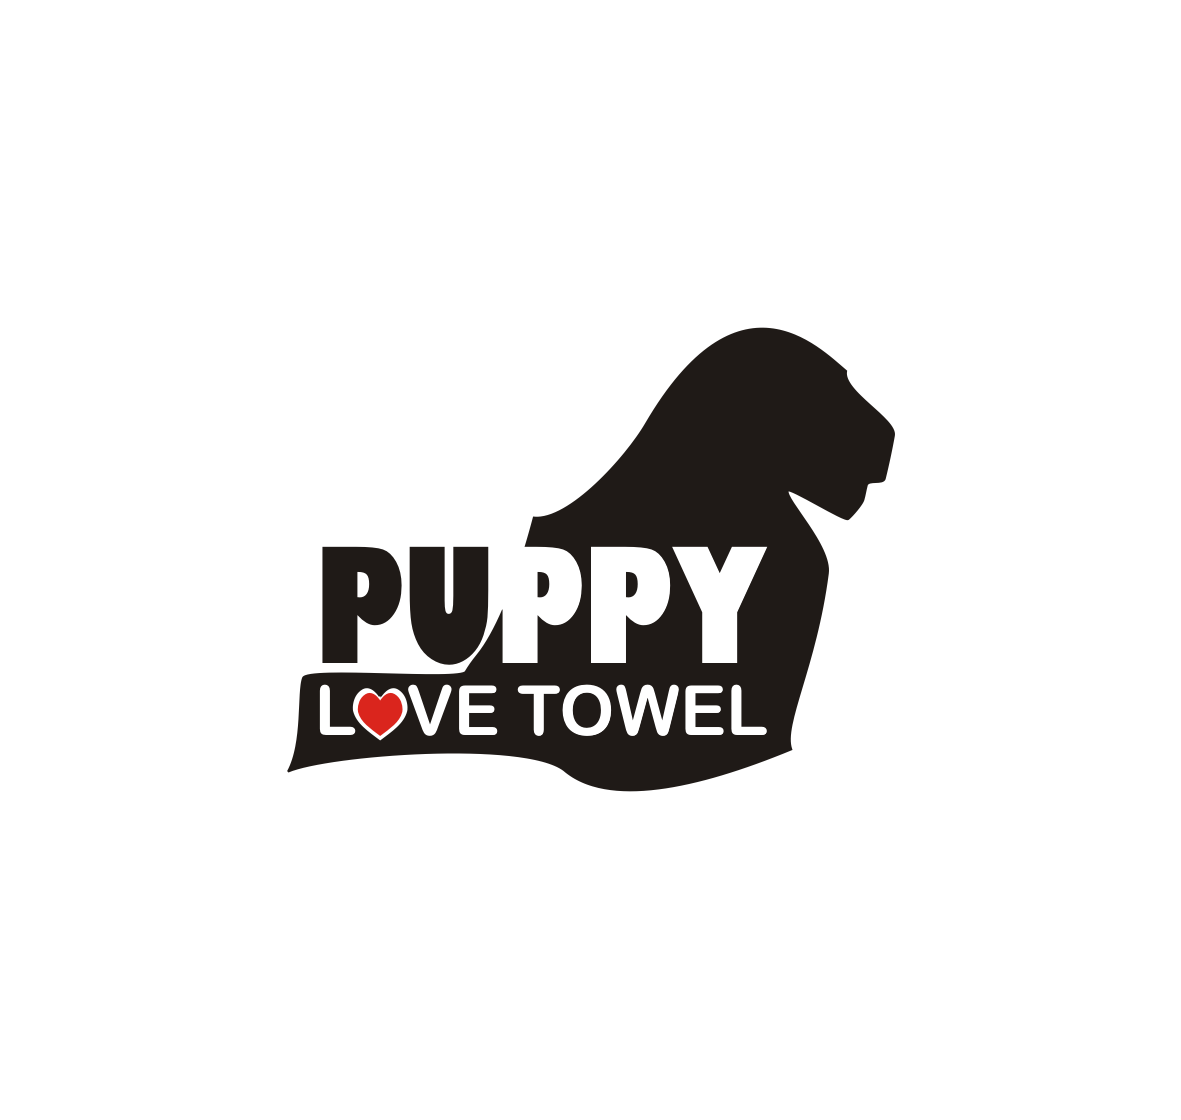 Logo Design by Nthus Nthis - Entry No. 7 in the Logo Design Contest Artistic Logo Design for Puppy Love Towels.